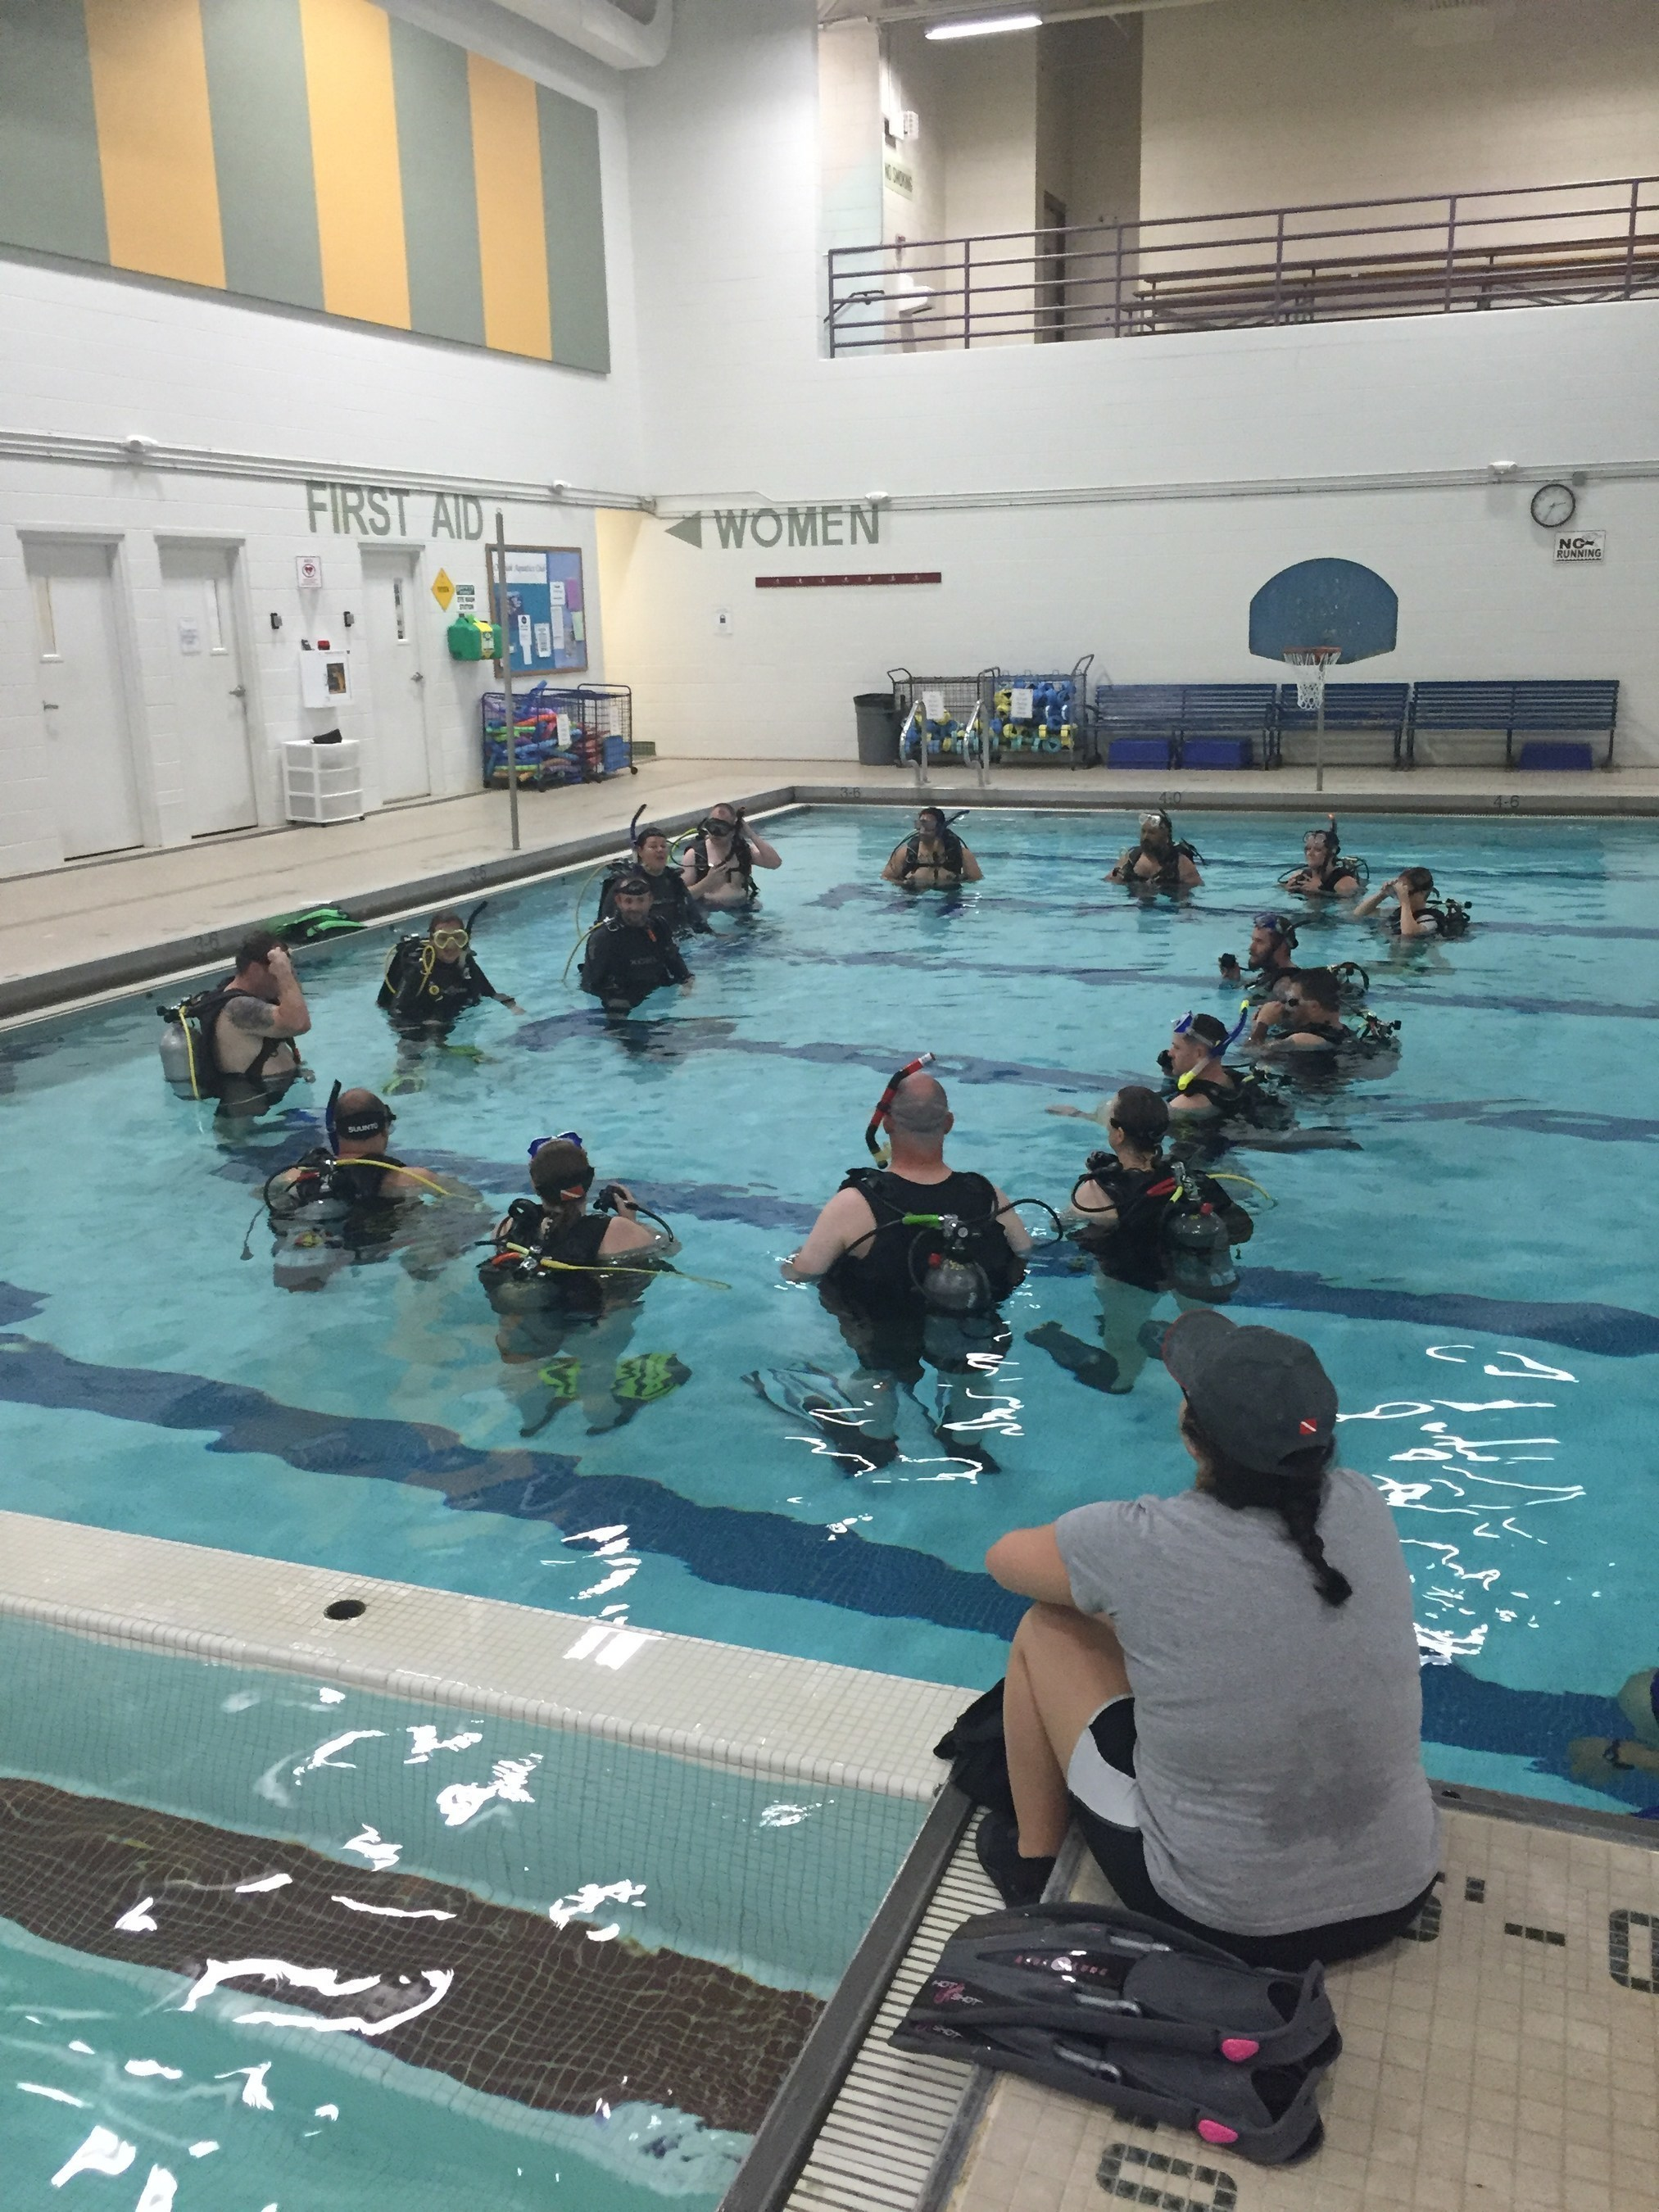 During the lesson, participants were equipped with scuba gear, which they used to traverse various obstacles in the swimming pool.